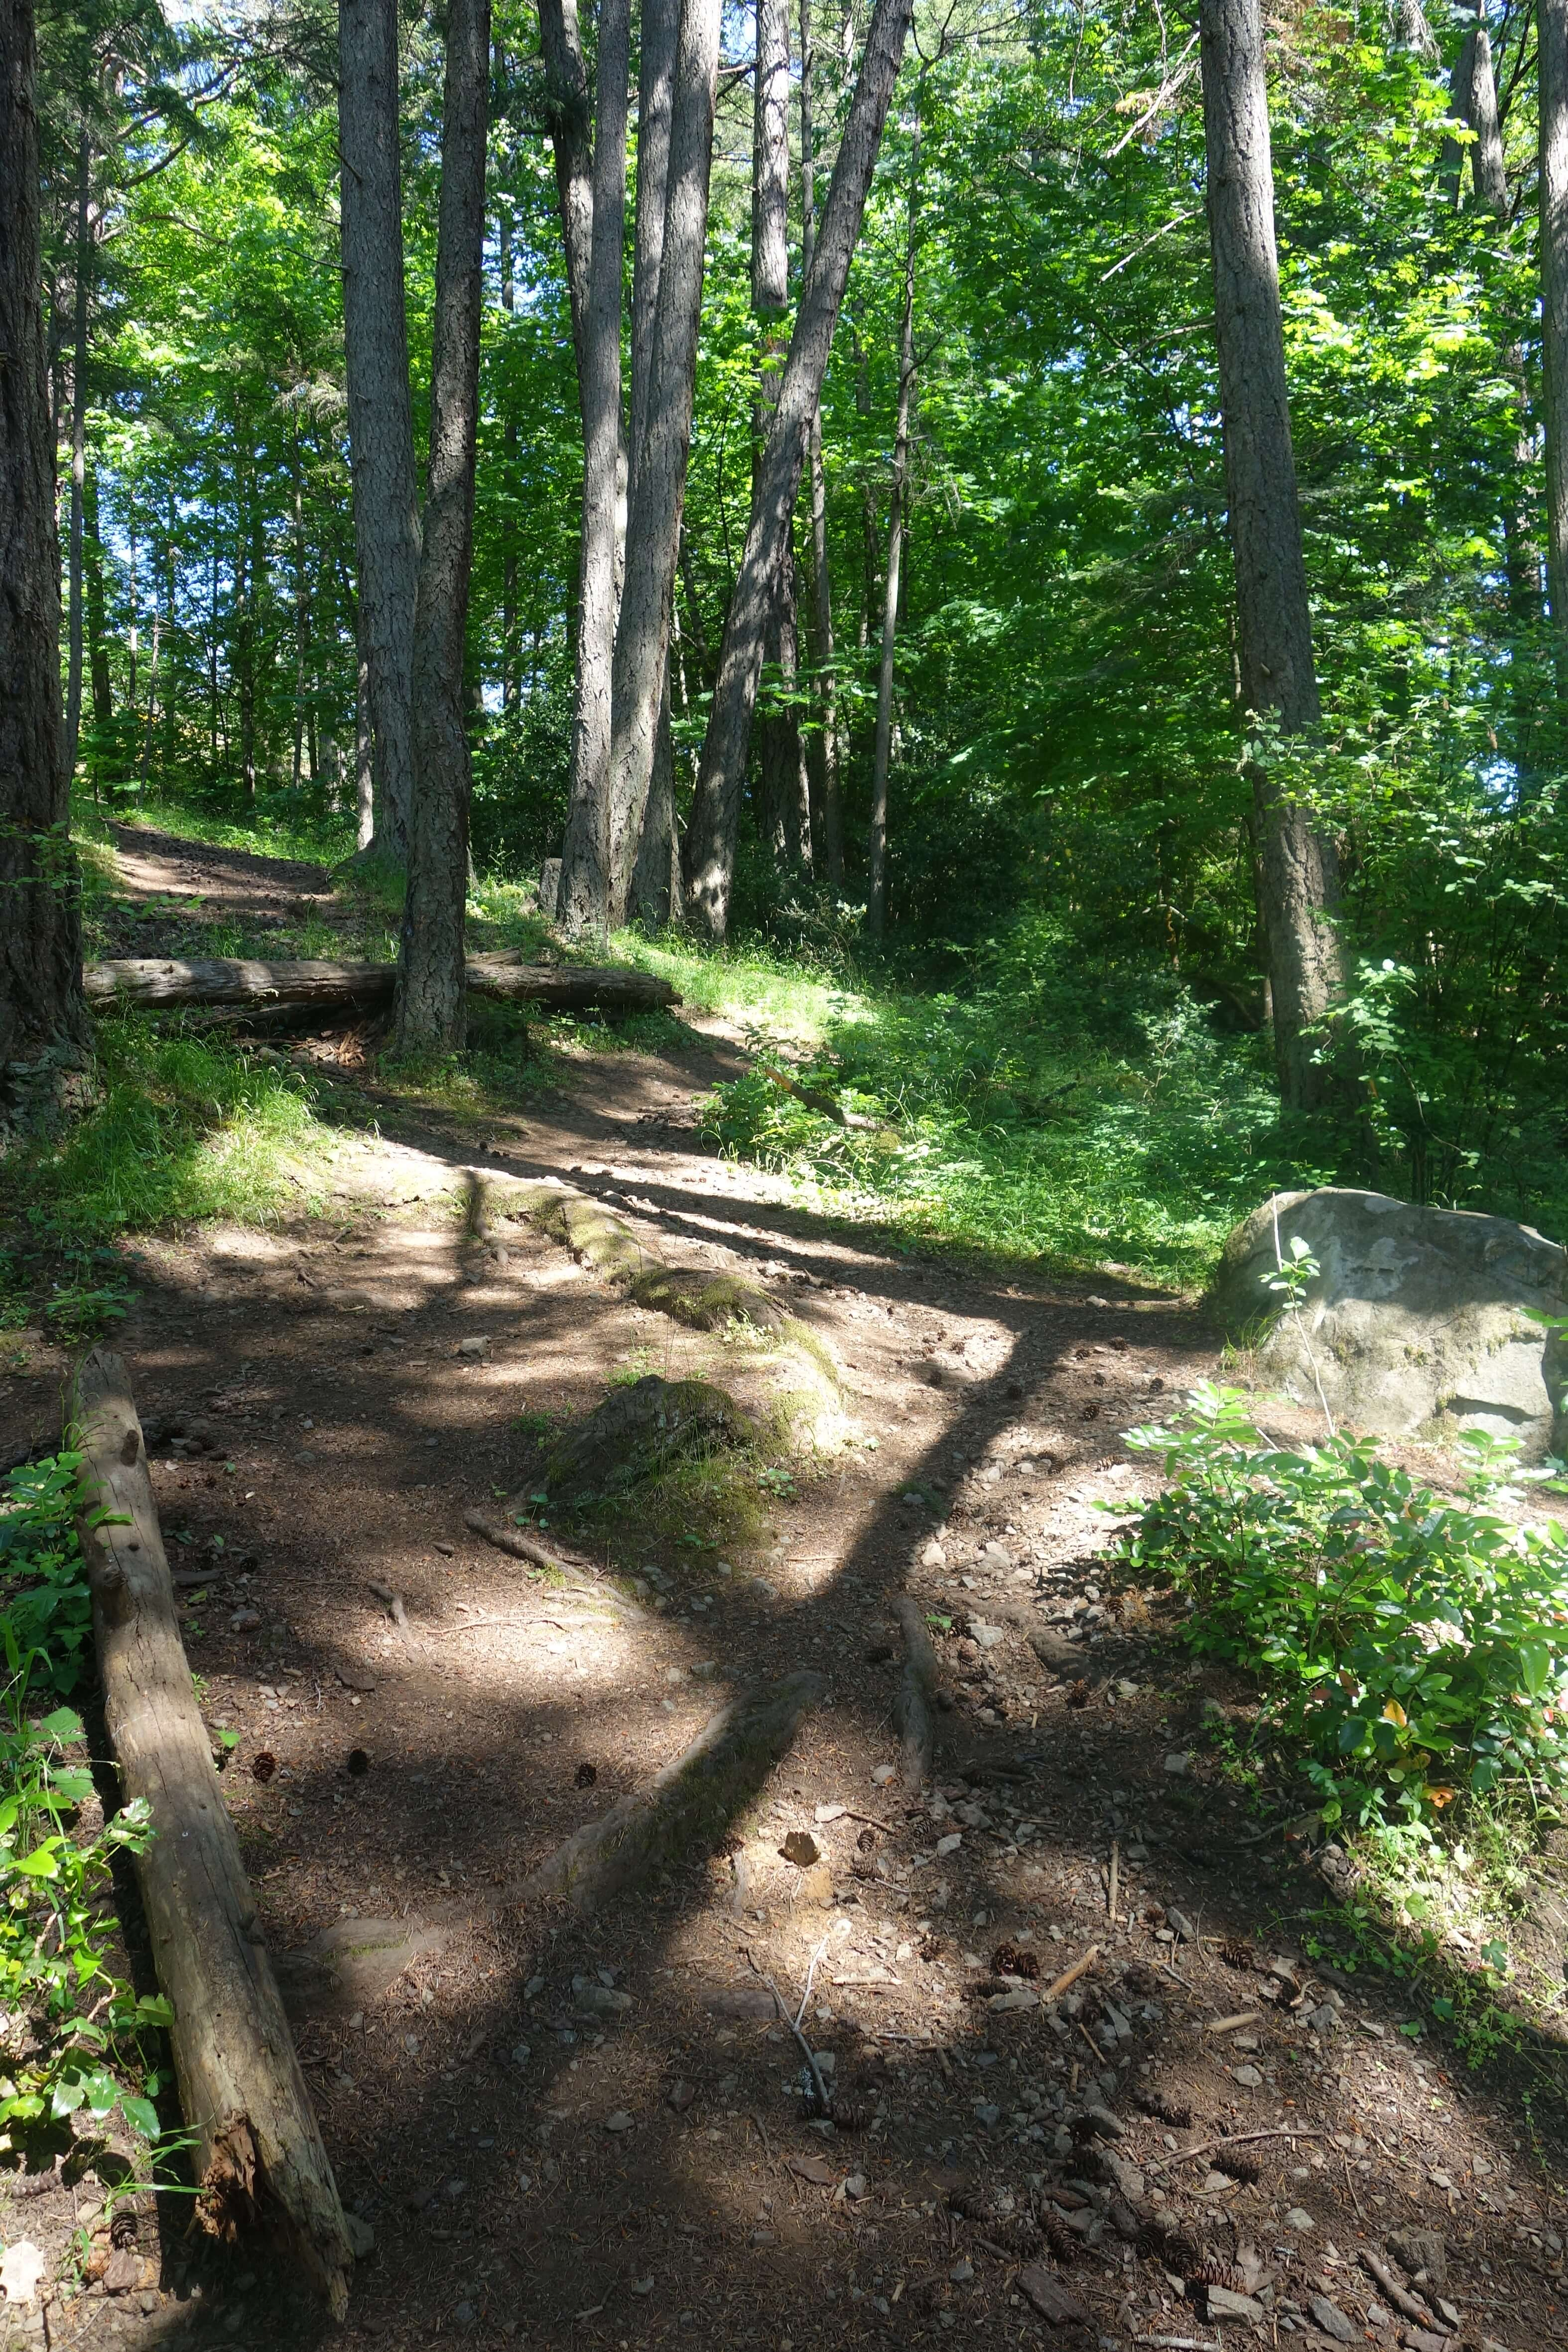 a zigzag dirt running trail through the forest